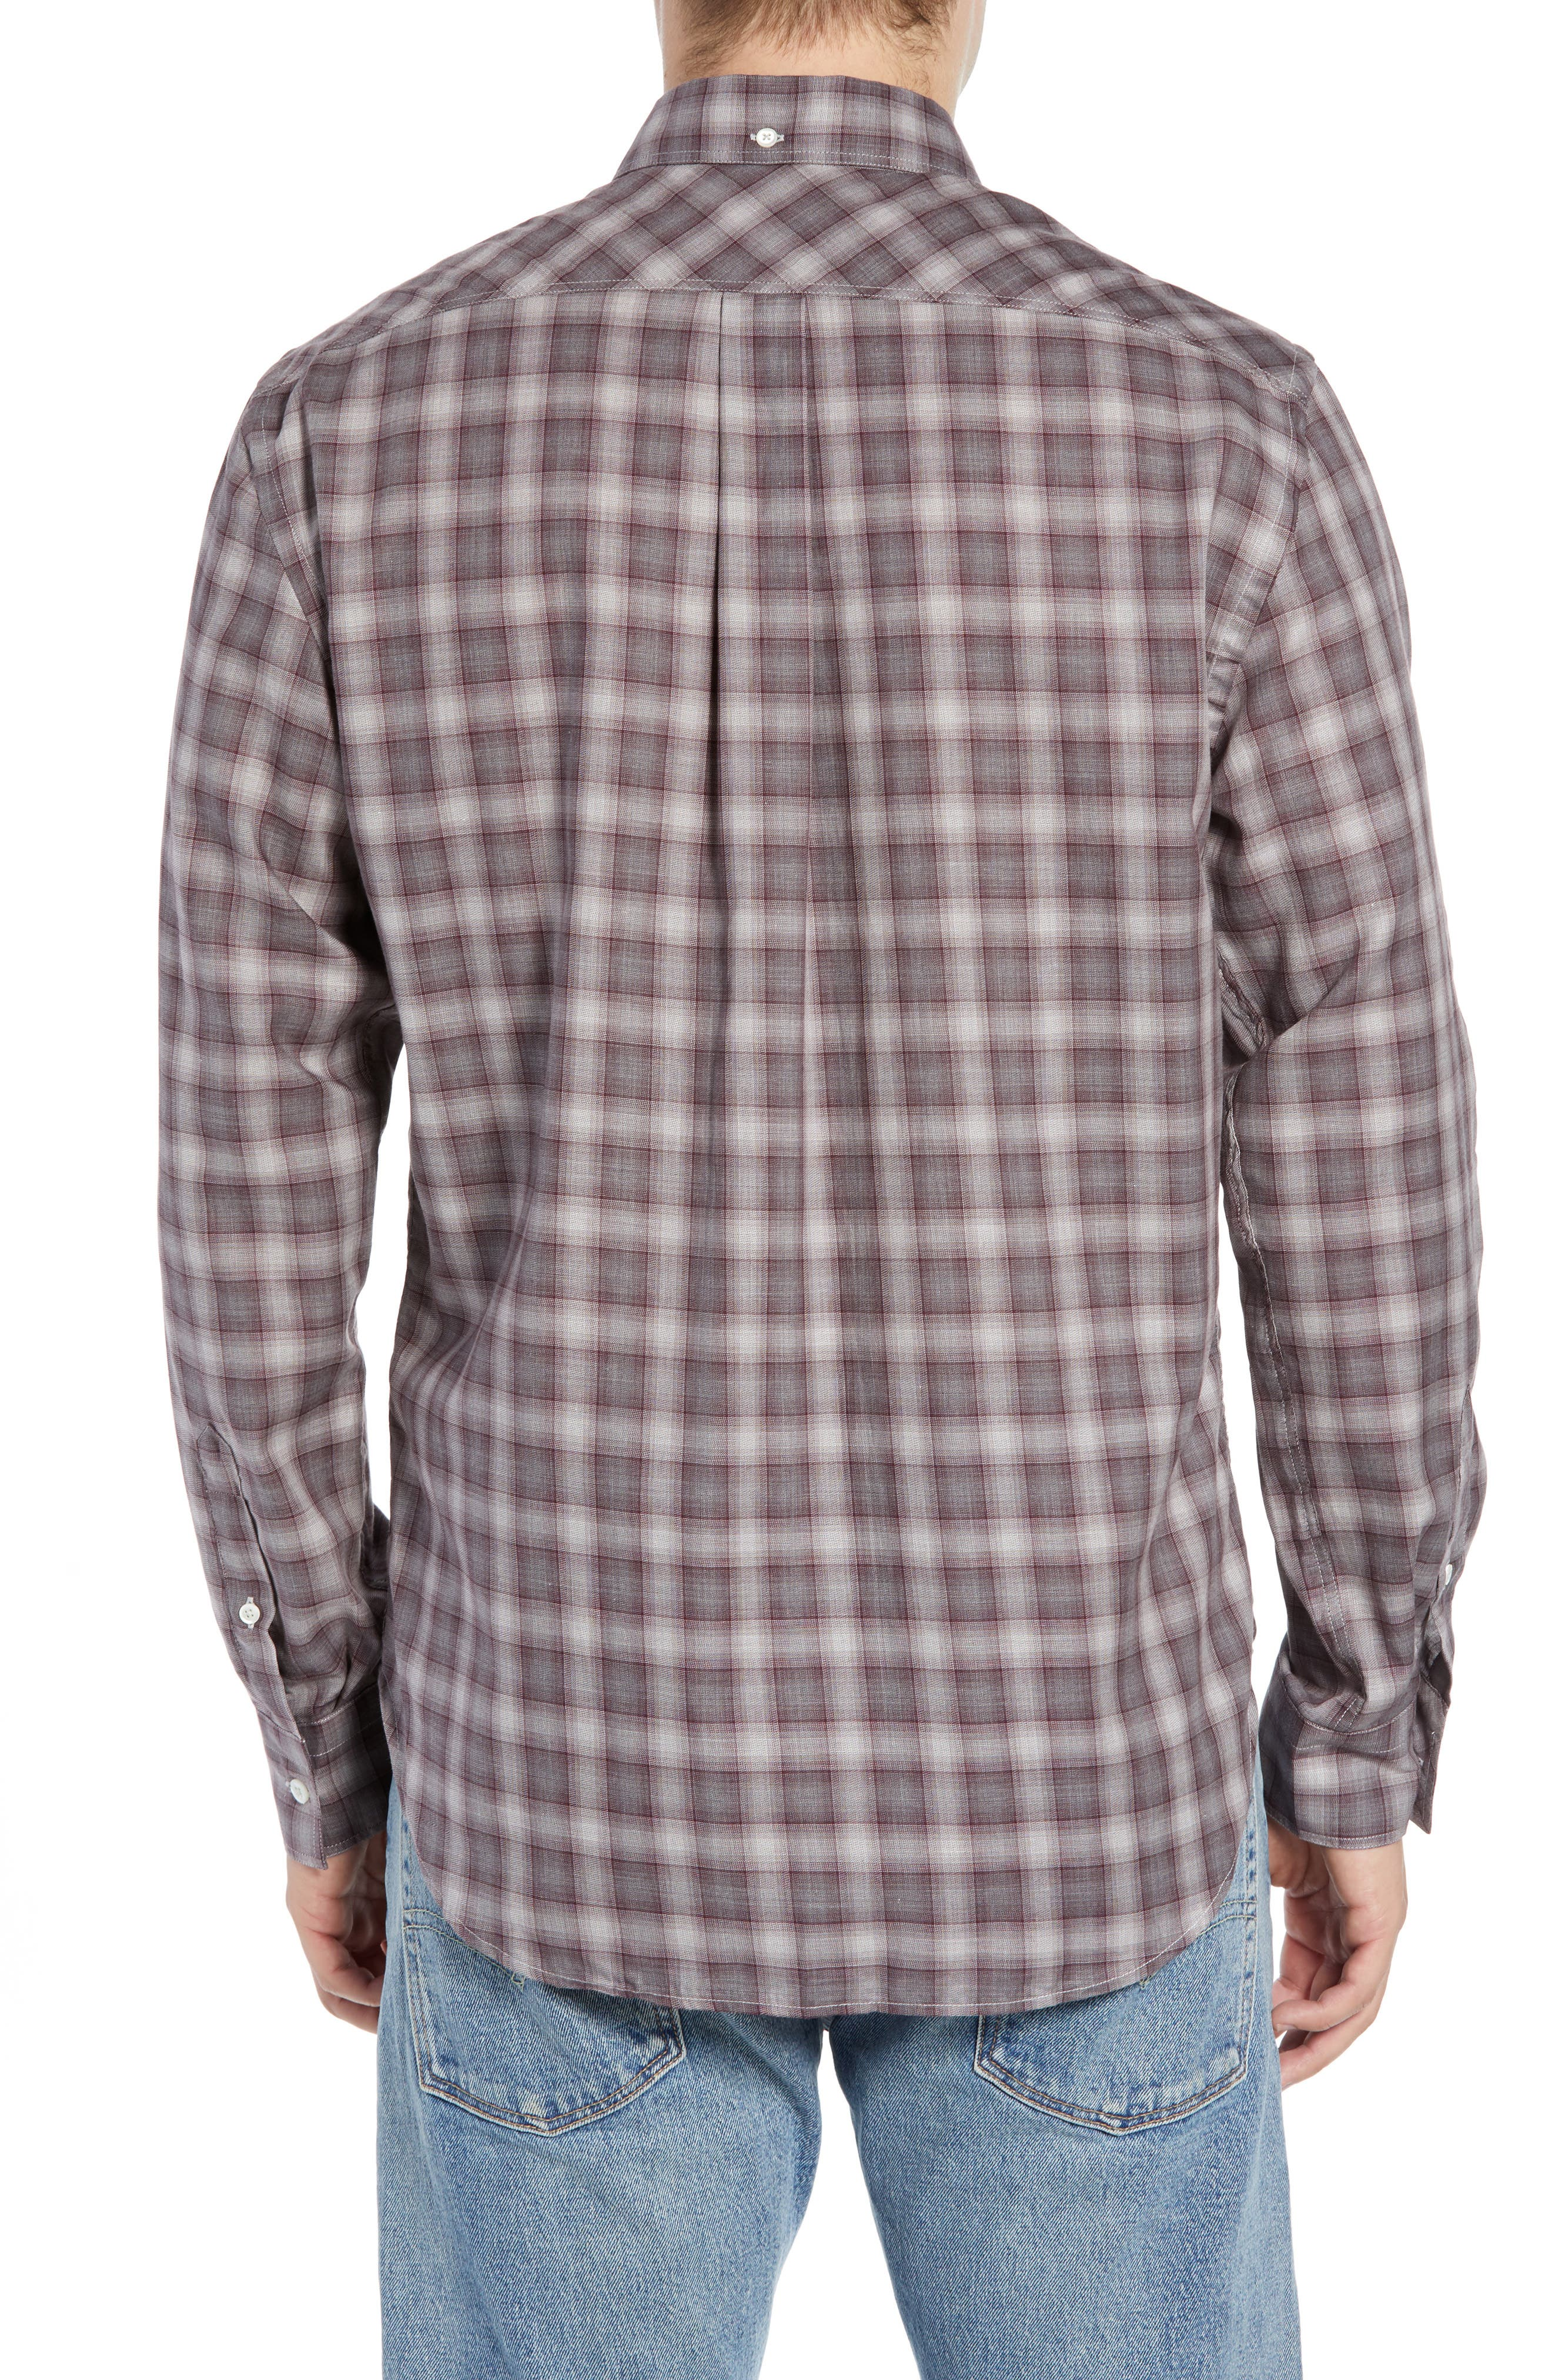 Tuscumbia Regular Fit Plaid Sport Shirt,                             Alternate thumbnail 3, color,                             930